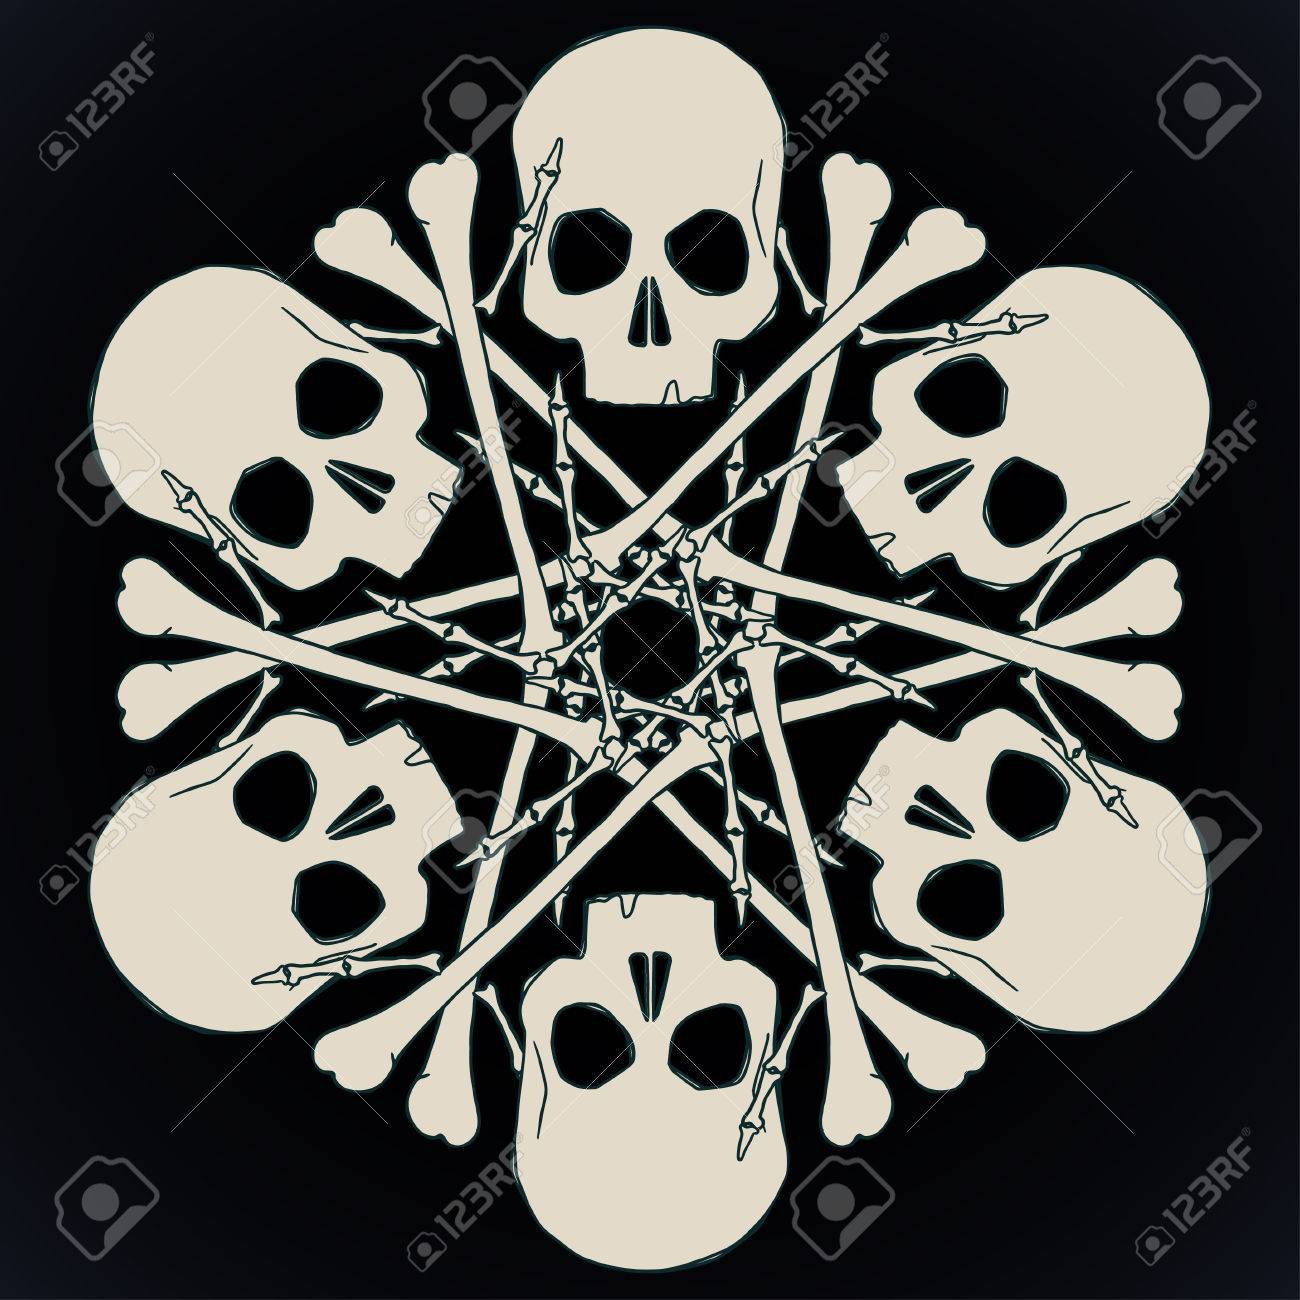 Snowflake Made Of Skulls And Bones In Beige Isolated Over Black